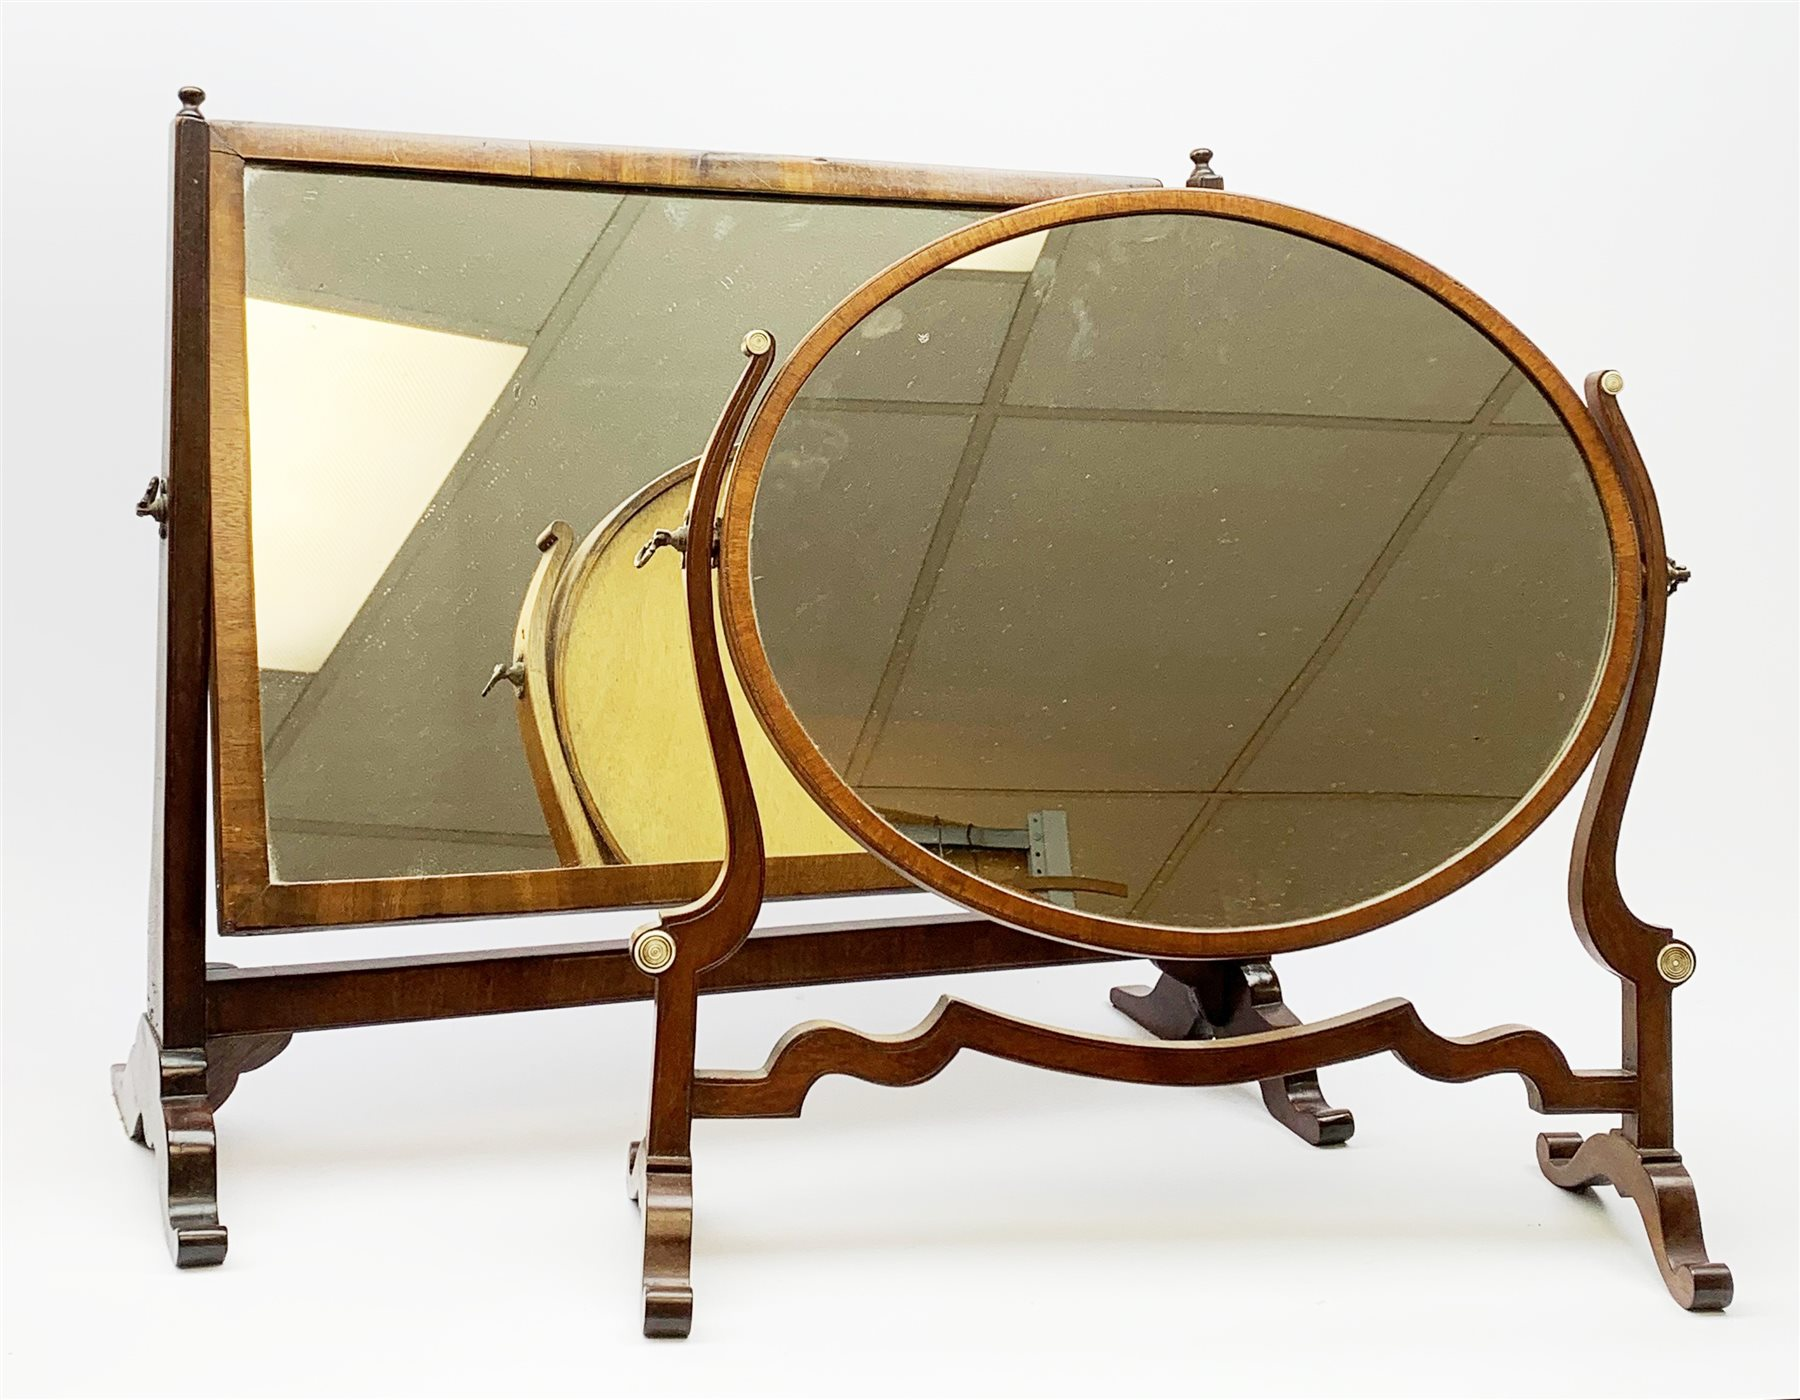 An Edwardian mahogany dressing table mirror, the oval mirror plate in swing frame, upon flared legs